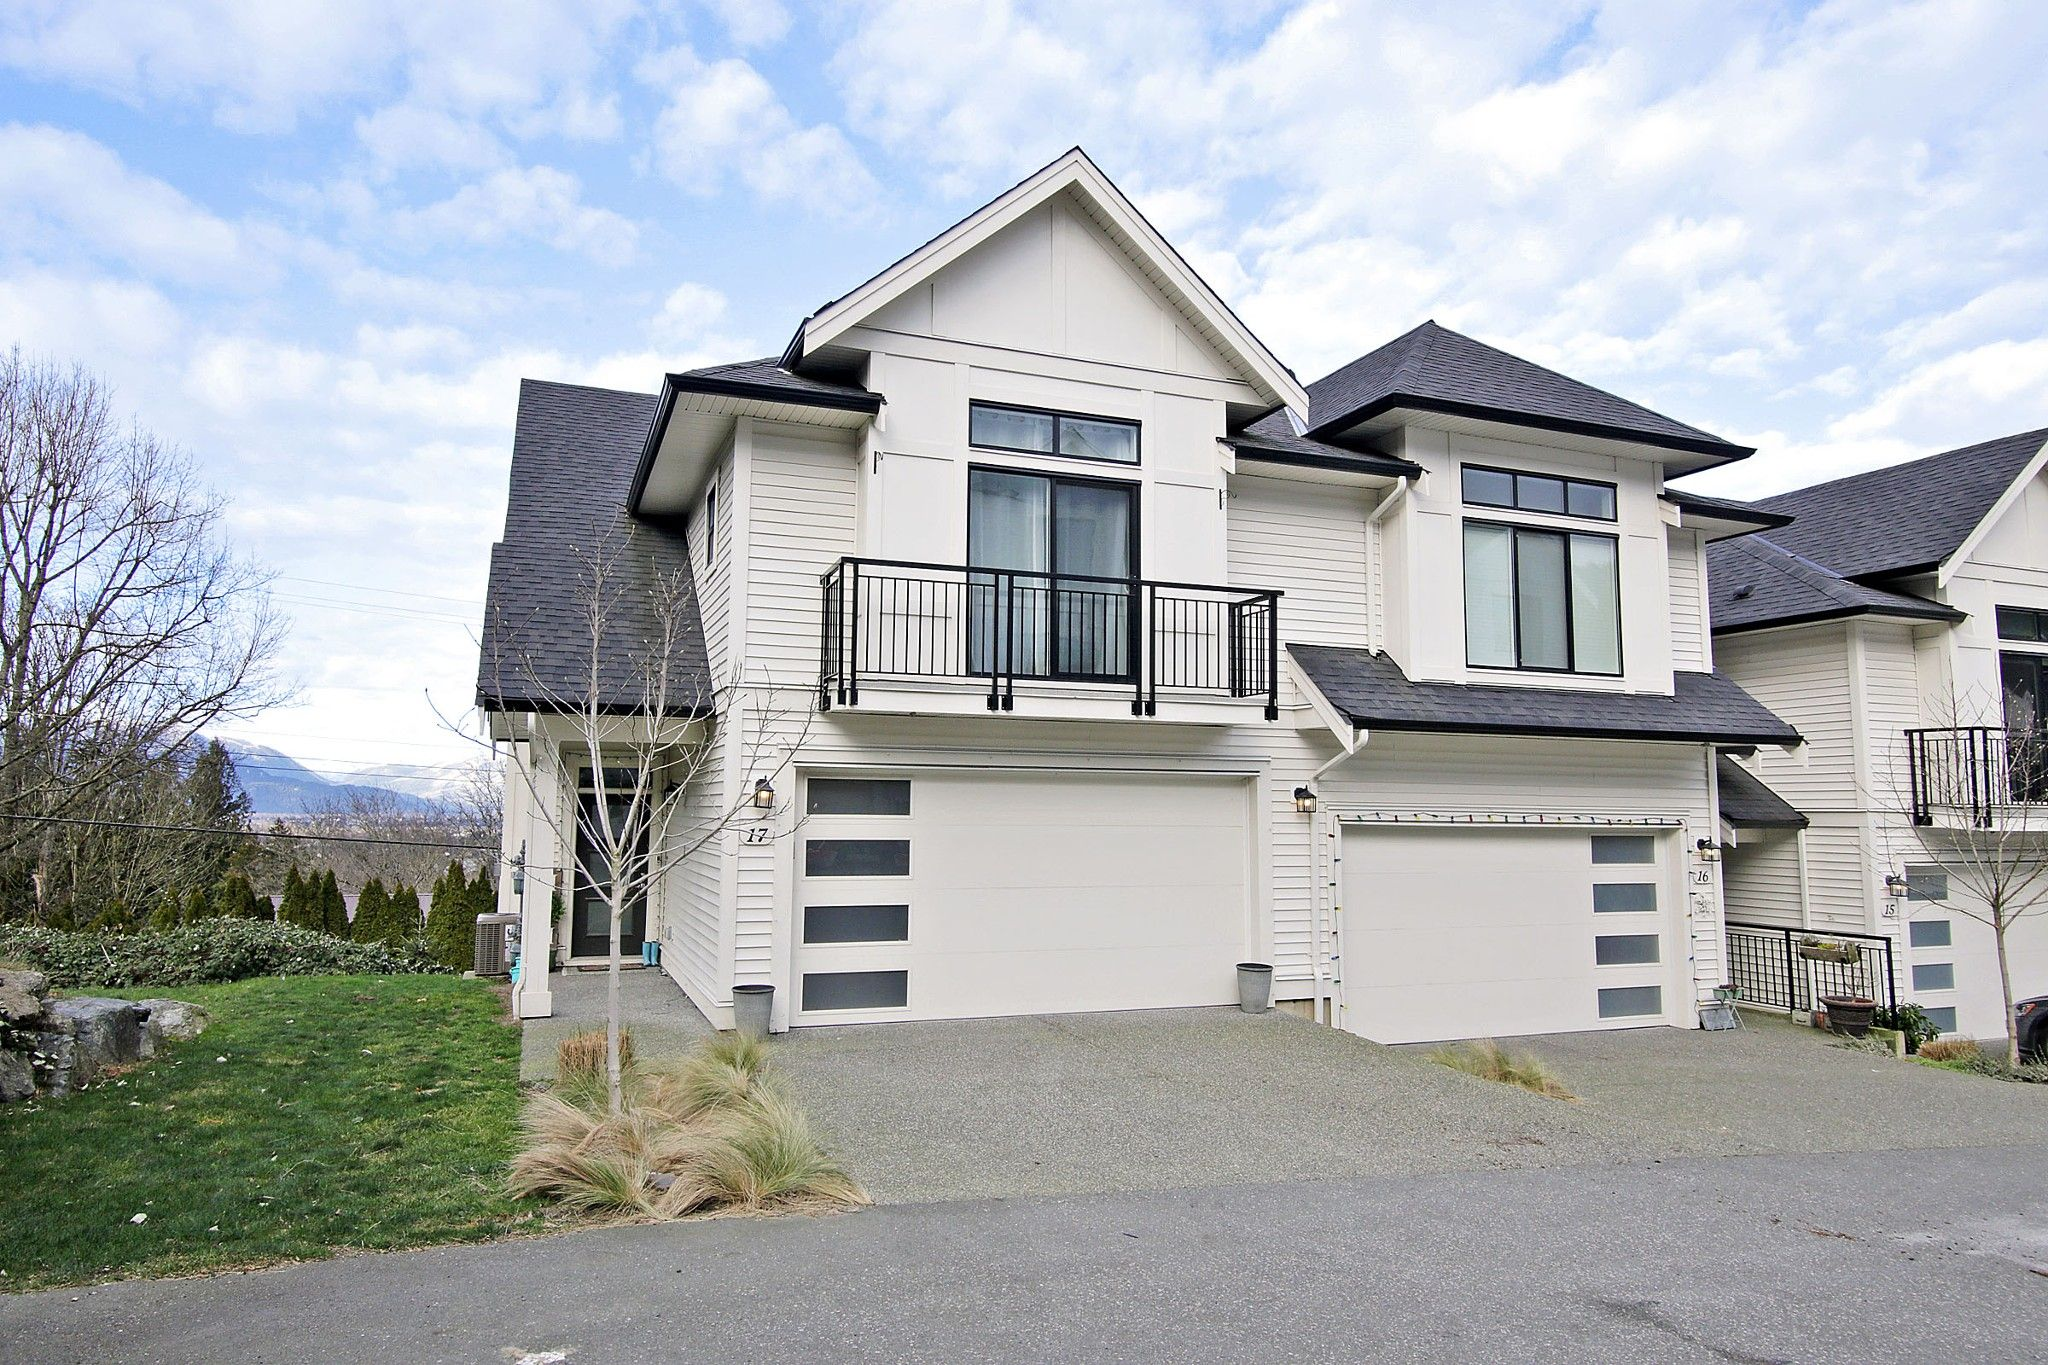 """Main Photo: 17 5797 PROMONTORY Road in Chilliwack: Promontory Townhouse for sale in """"Thornton Terrace"""" (Sardis)  : MLS®# R2537938"""